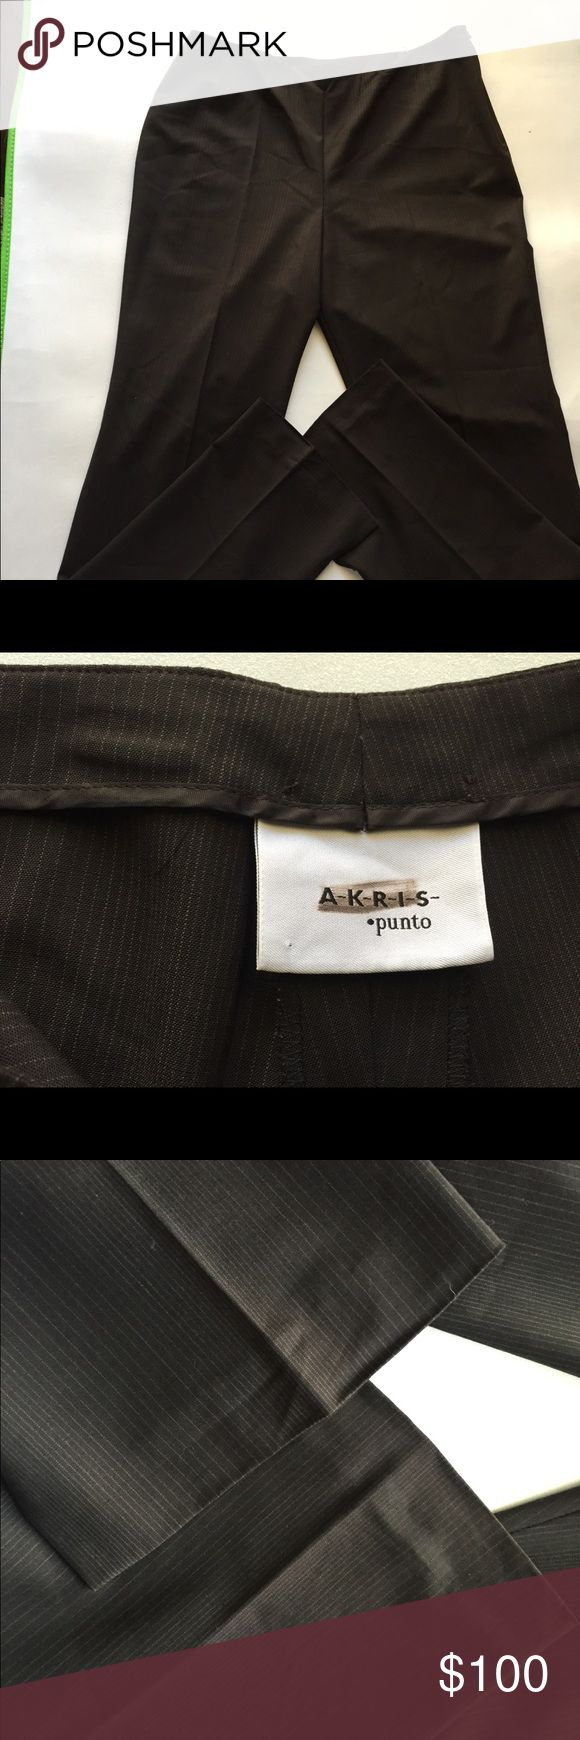 AKRIS PUNTO HIGH END WOMENS SZ 12 BROWN SLACKS •EXCELLENT CONDITION • •note     ONE HEM STITCHING CAME LOOSE OTHERWISE NO ISSUES • •AKRIS PUNTO • •SIZE 12 • •BROWN WITH WHITE STRIPES • •SLACKS • •SIDE HIDDEN ZIPPER • •HEMS HAS SLITS FOR A BETTER FIT FOR ANY TYPE OF SHOES Pants Trousers